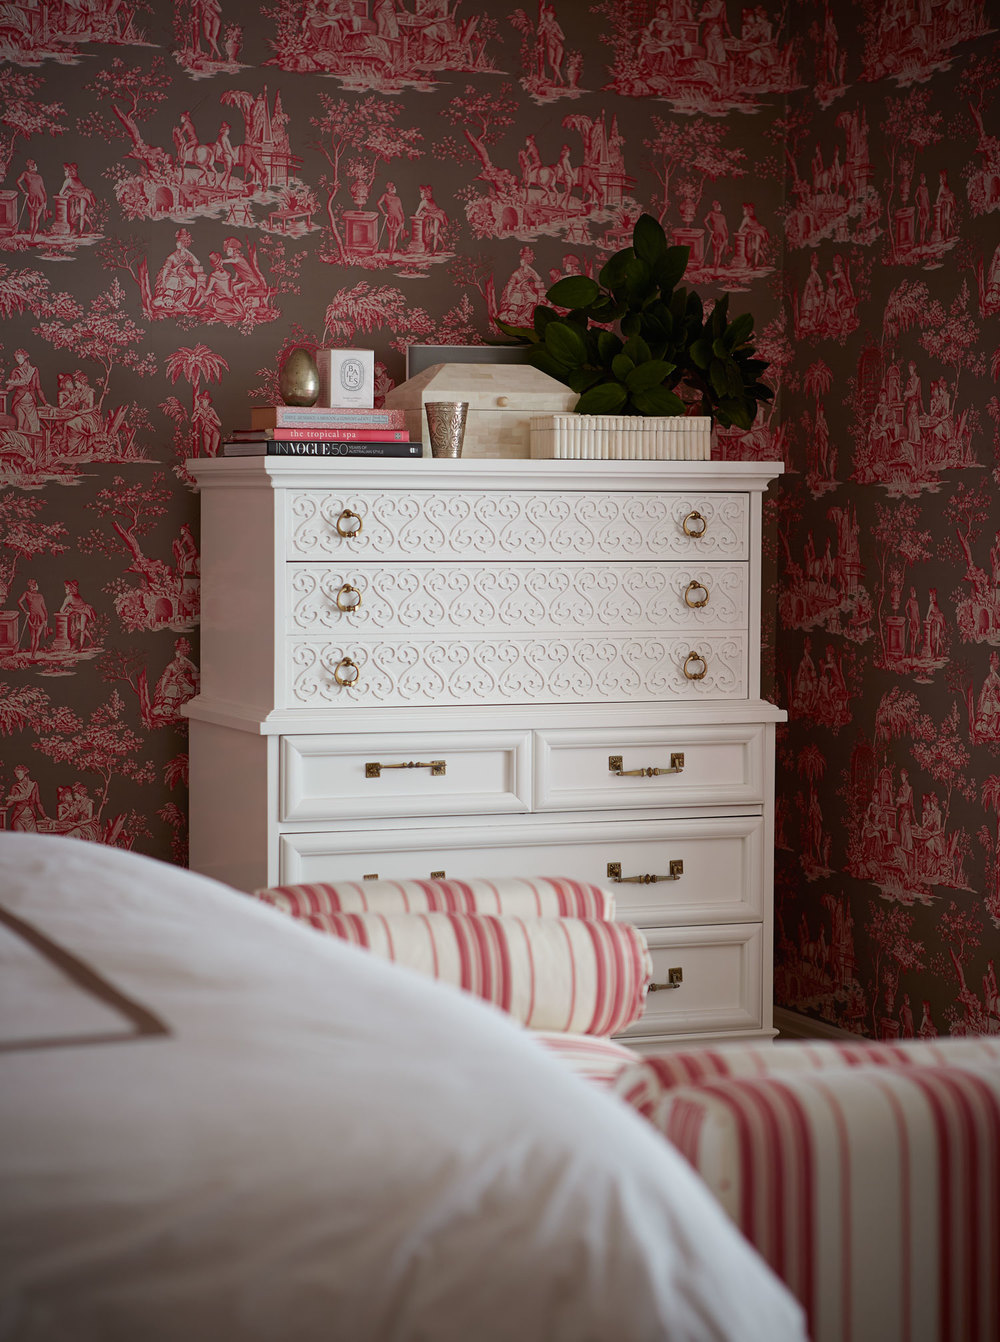 manuel-canovas-wallpaper-bedroom-raspberry-ivory-tallboy-chest-diane-bergeron.jpg